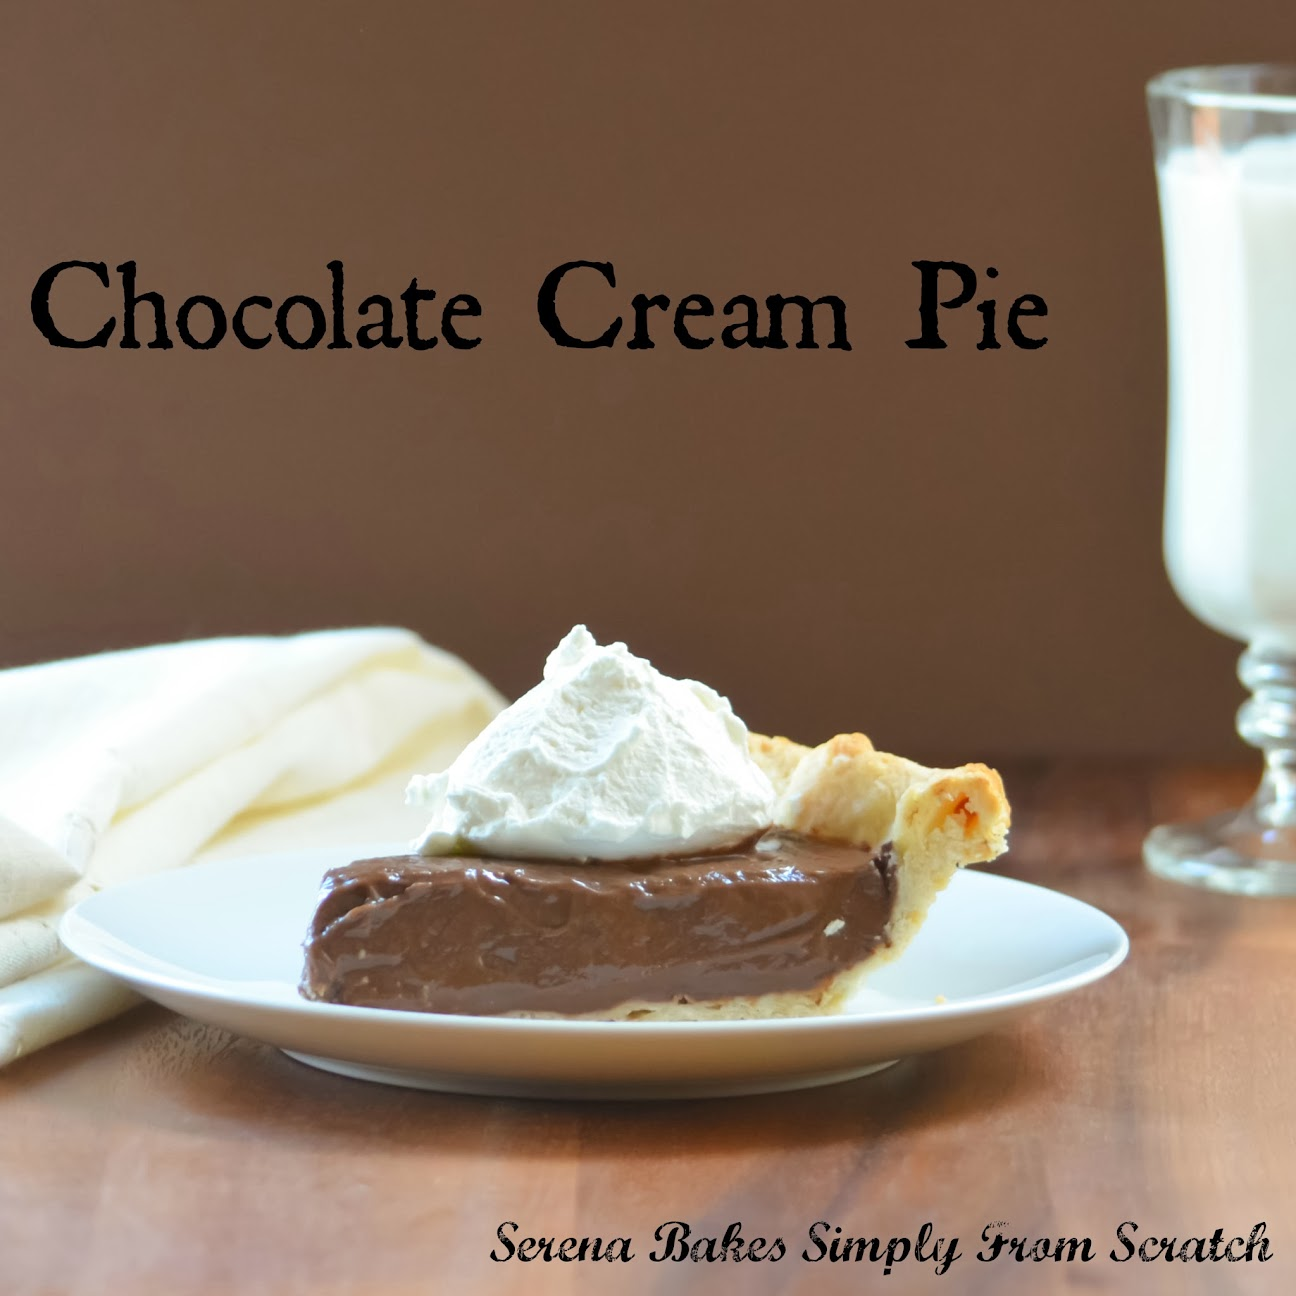 Chocolate Cream Pie With A Dairy Free Option | serenabakessimplyfromscratch.com